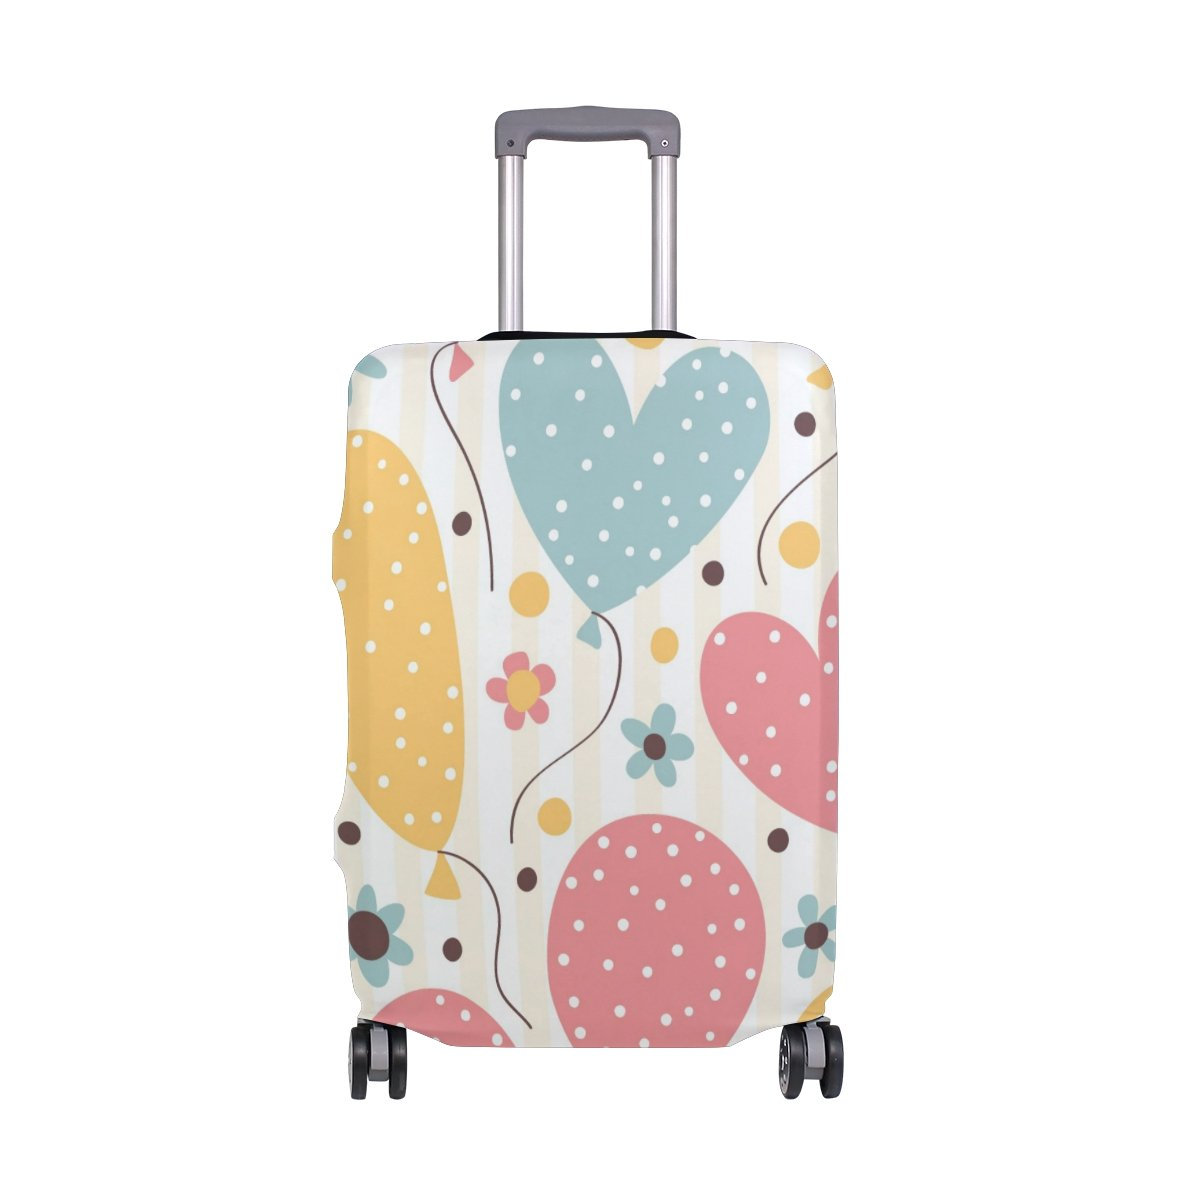 Cute Striped Birthday Love Heart Suitcase Luggage Cover Protector for Travel Kids Men Women